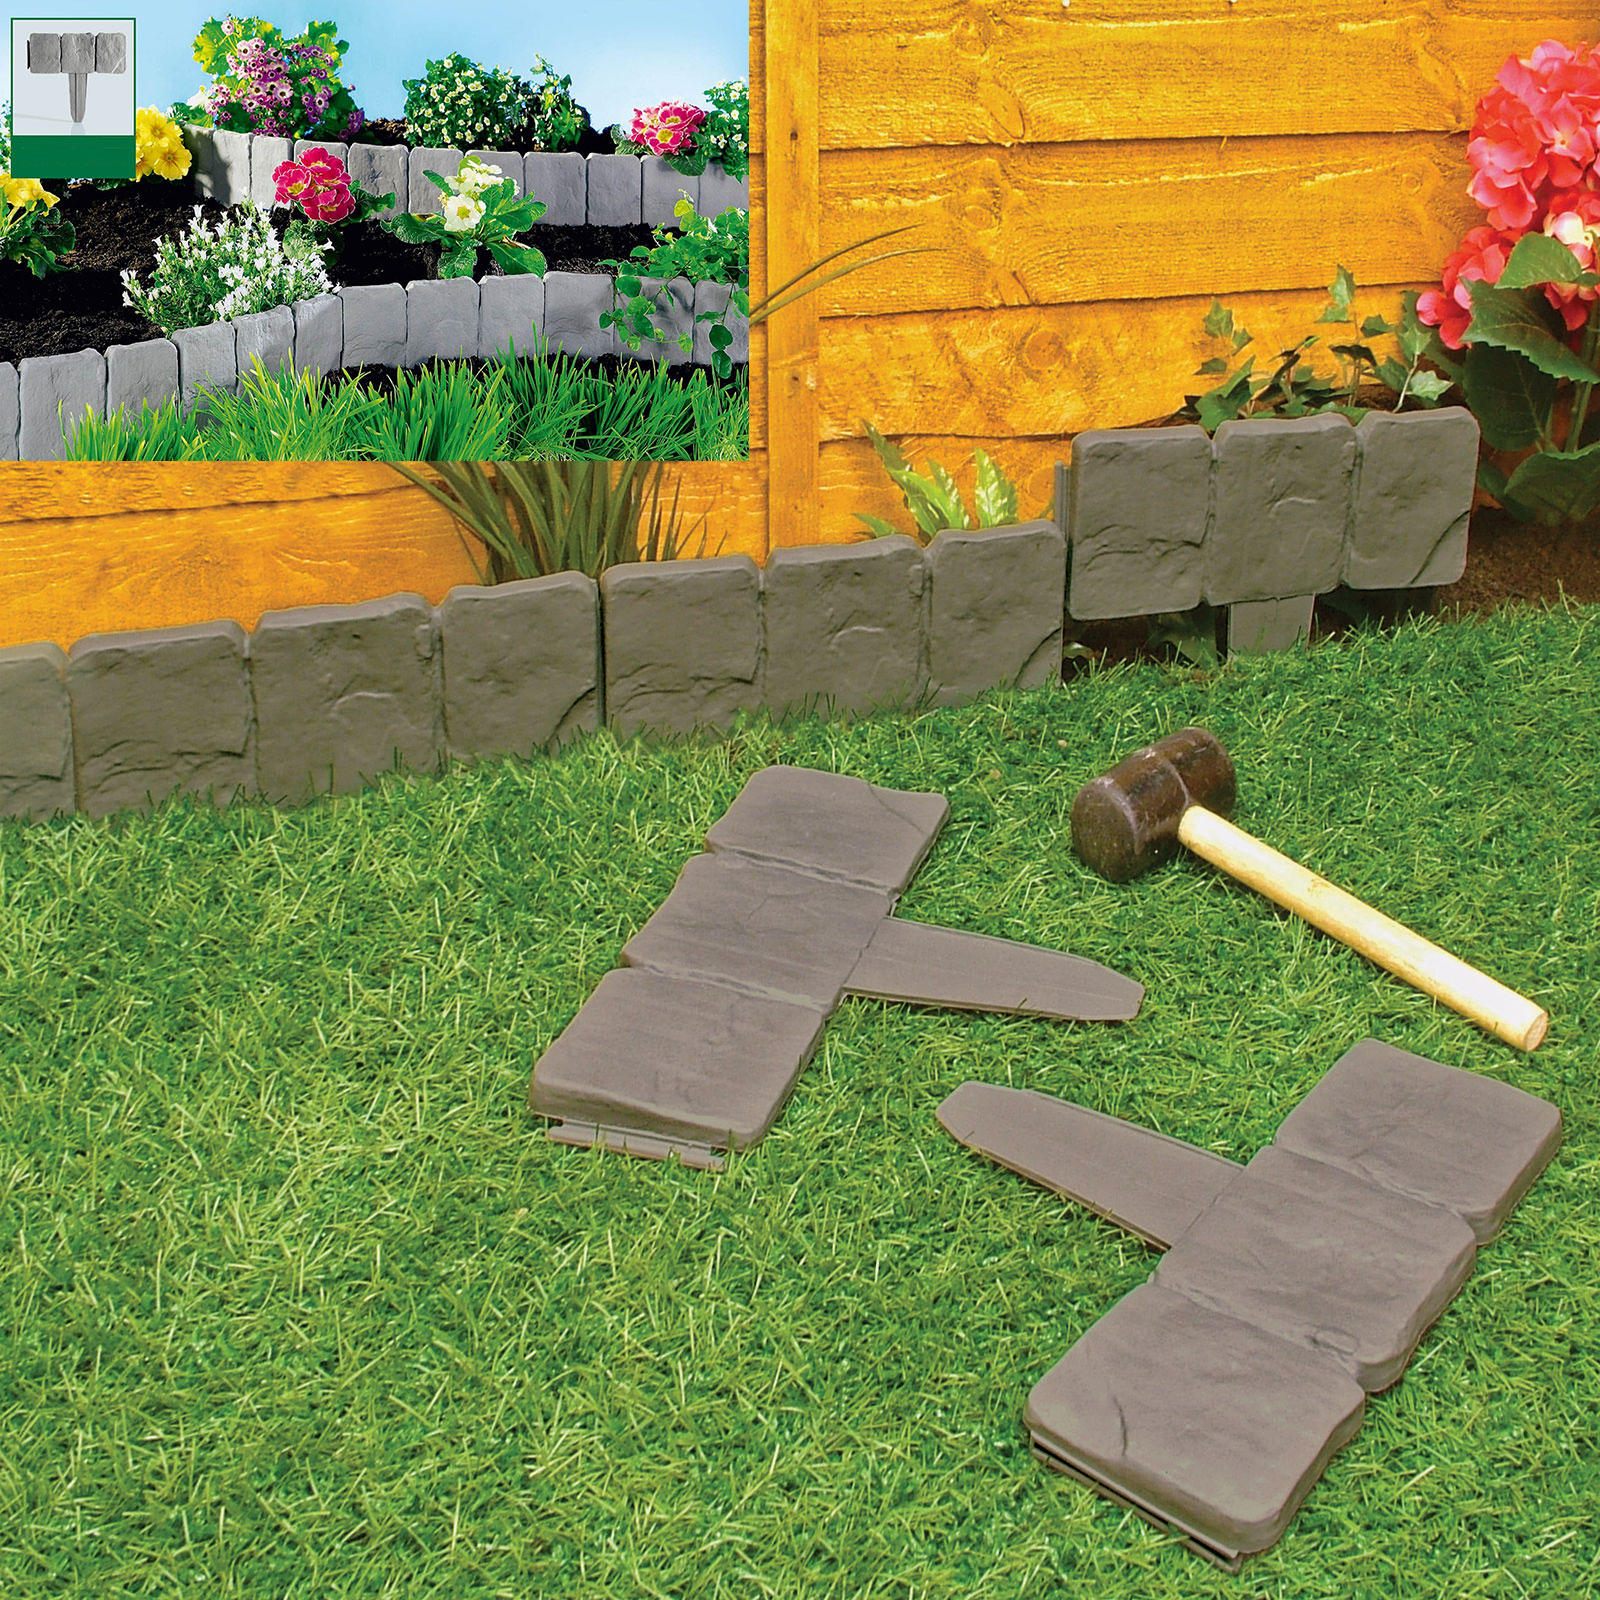 Details About Garden Lawn Edging Cobble Stone Plastic Plant Border 8ft 2 4m Fencing Hammer In